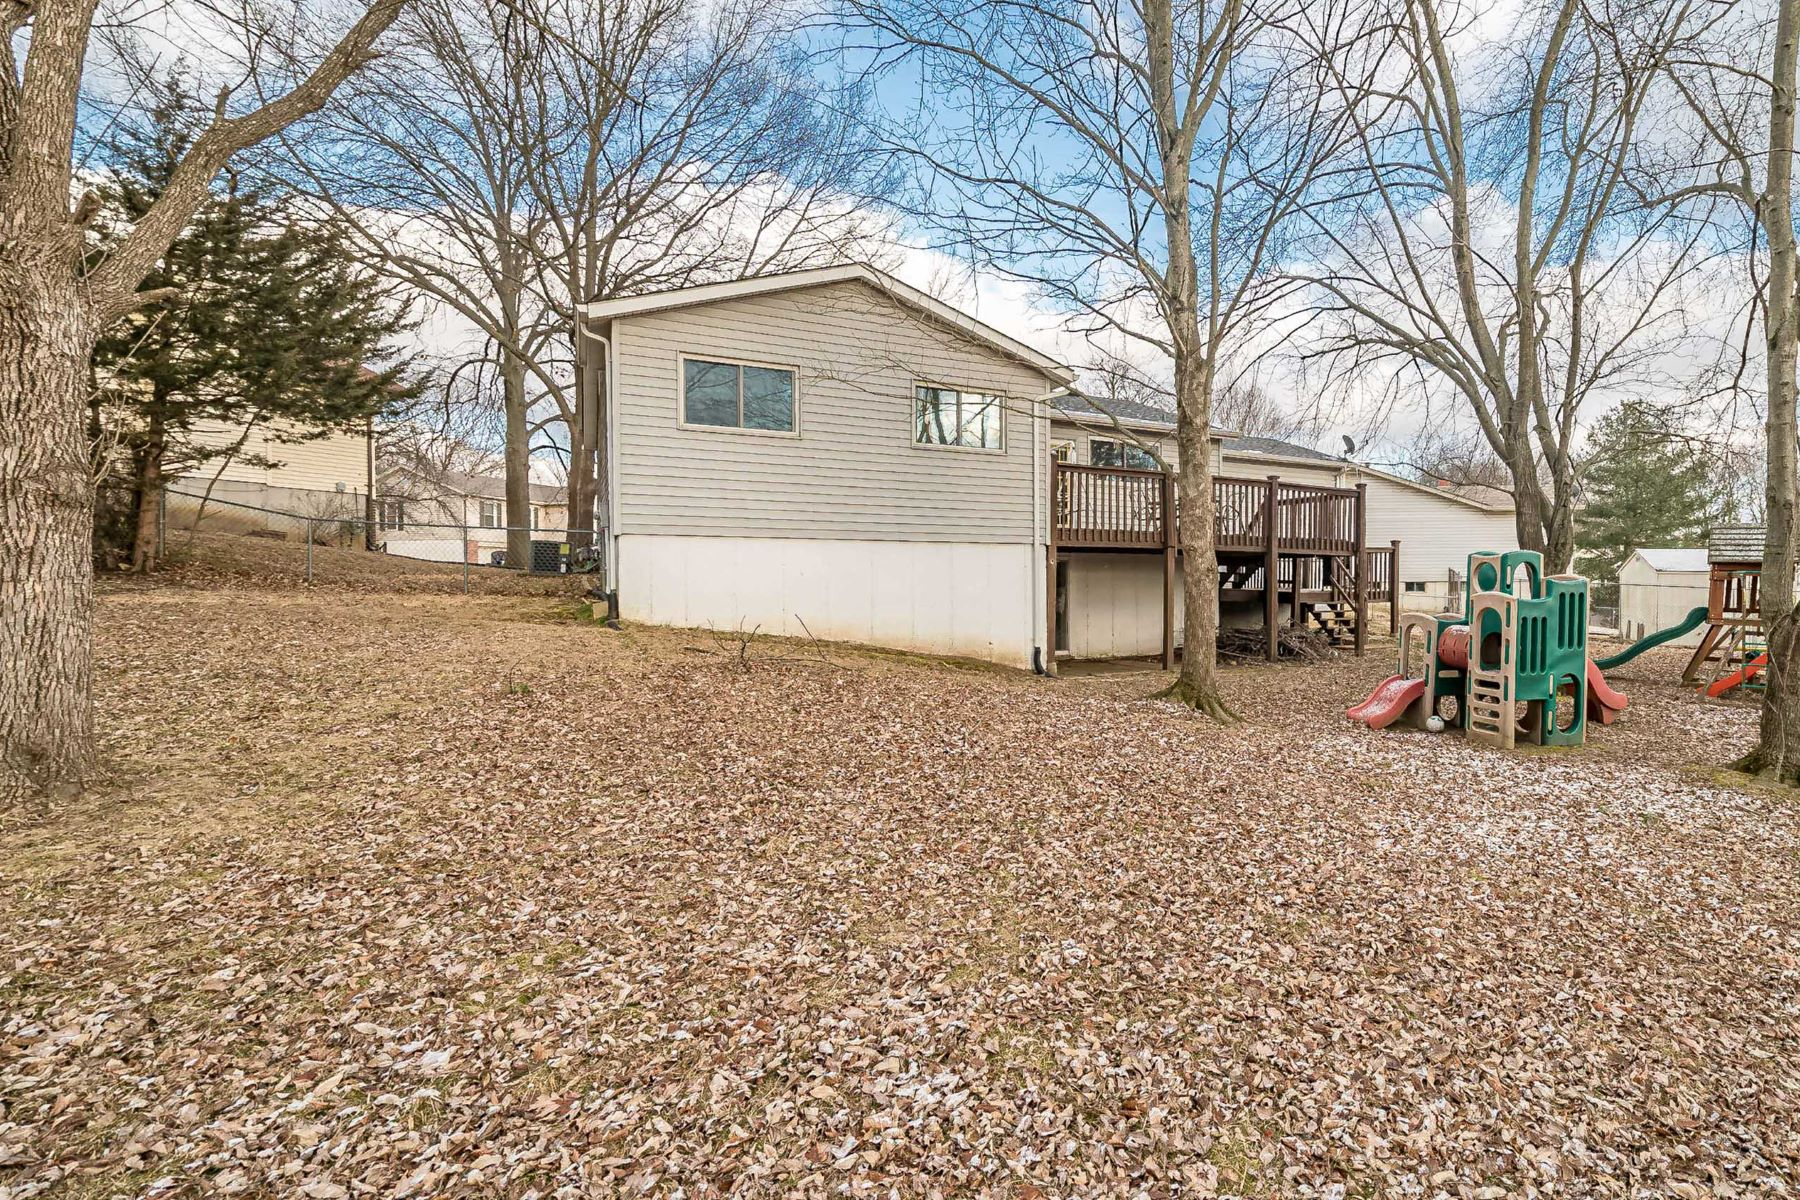 Additional photo for property listing at Walk to Laurel Park! 27 Sugar Leaf Drive St. Peters, Missouri 63376 United States